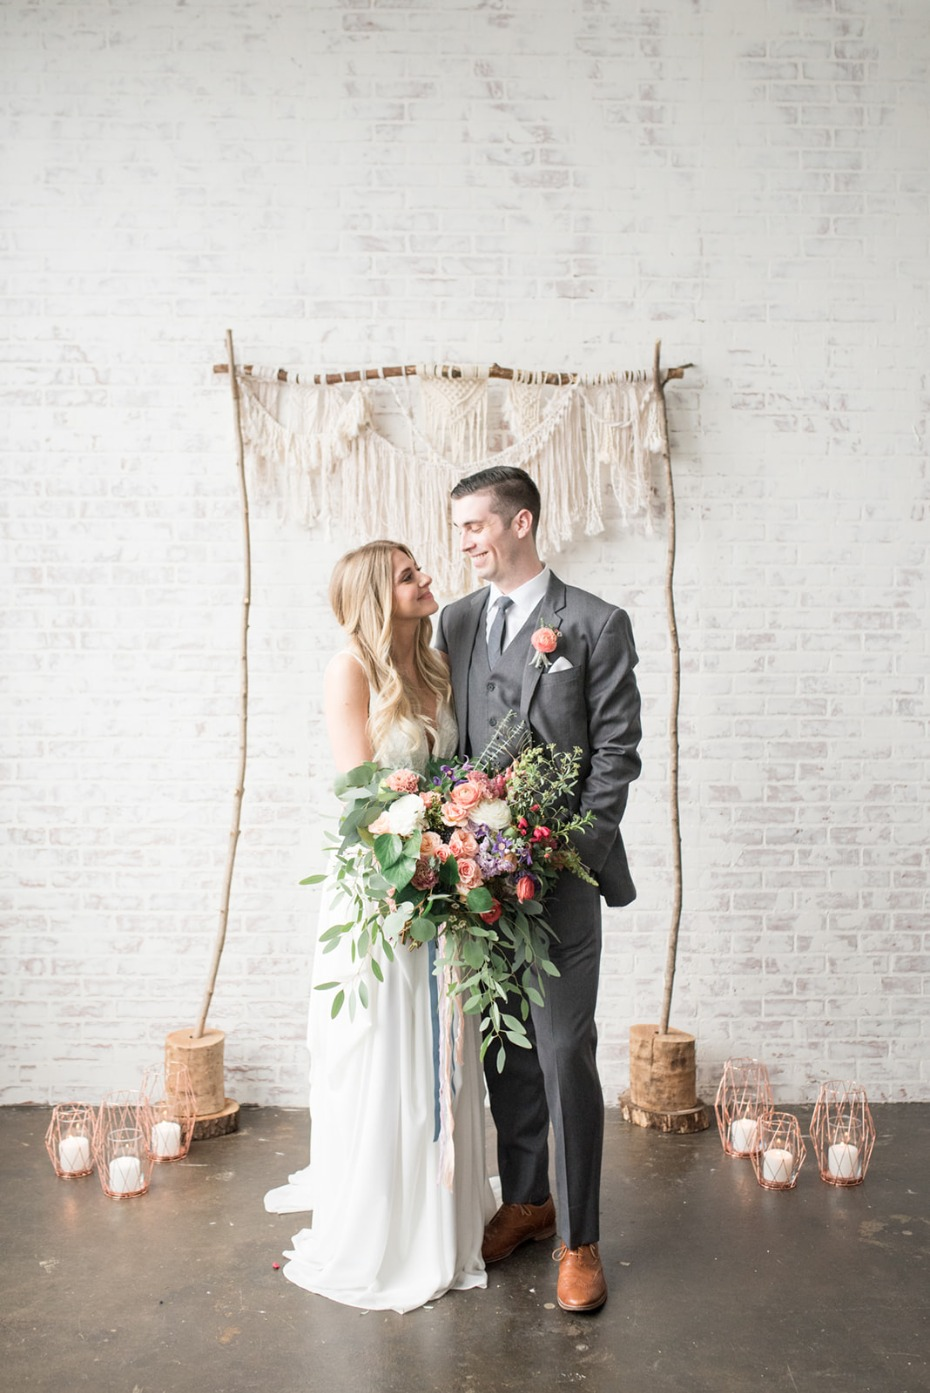 Modern bohemian ceremony backdrop